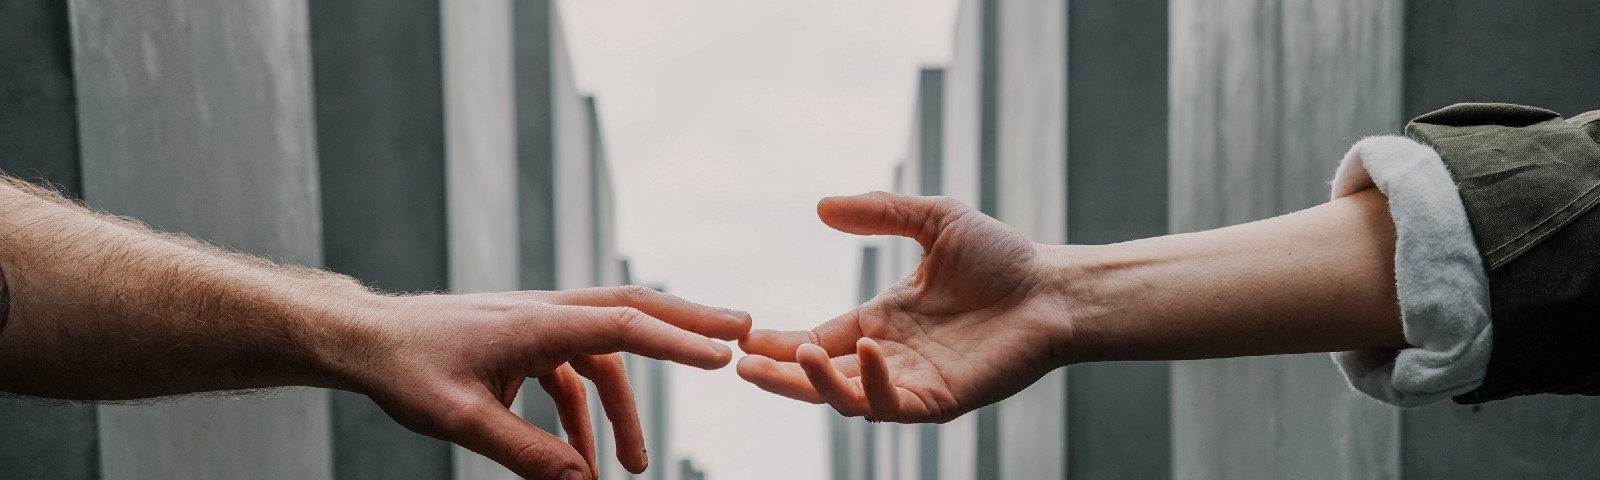 Two hands reaching out to each other, with slabs of concrete in the background